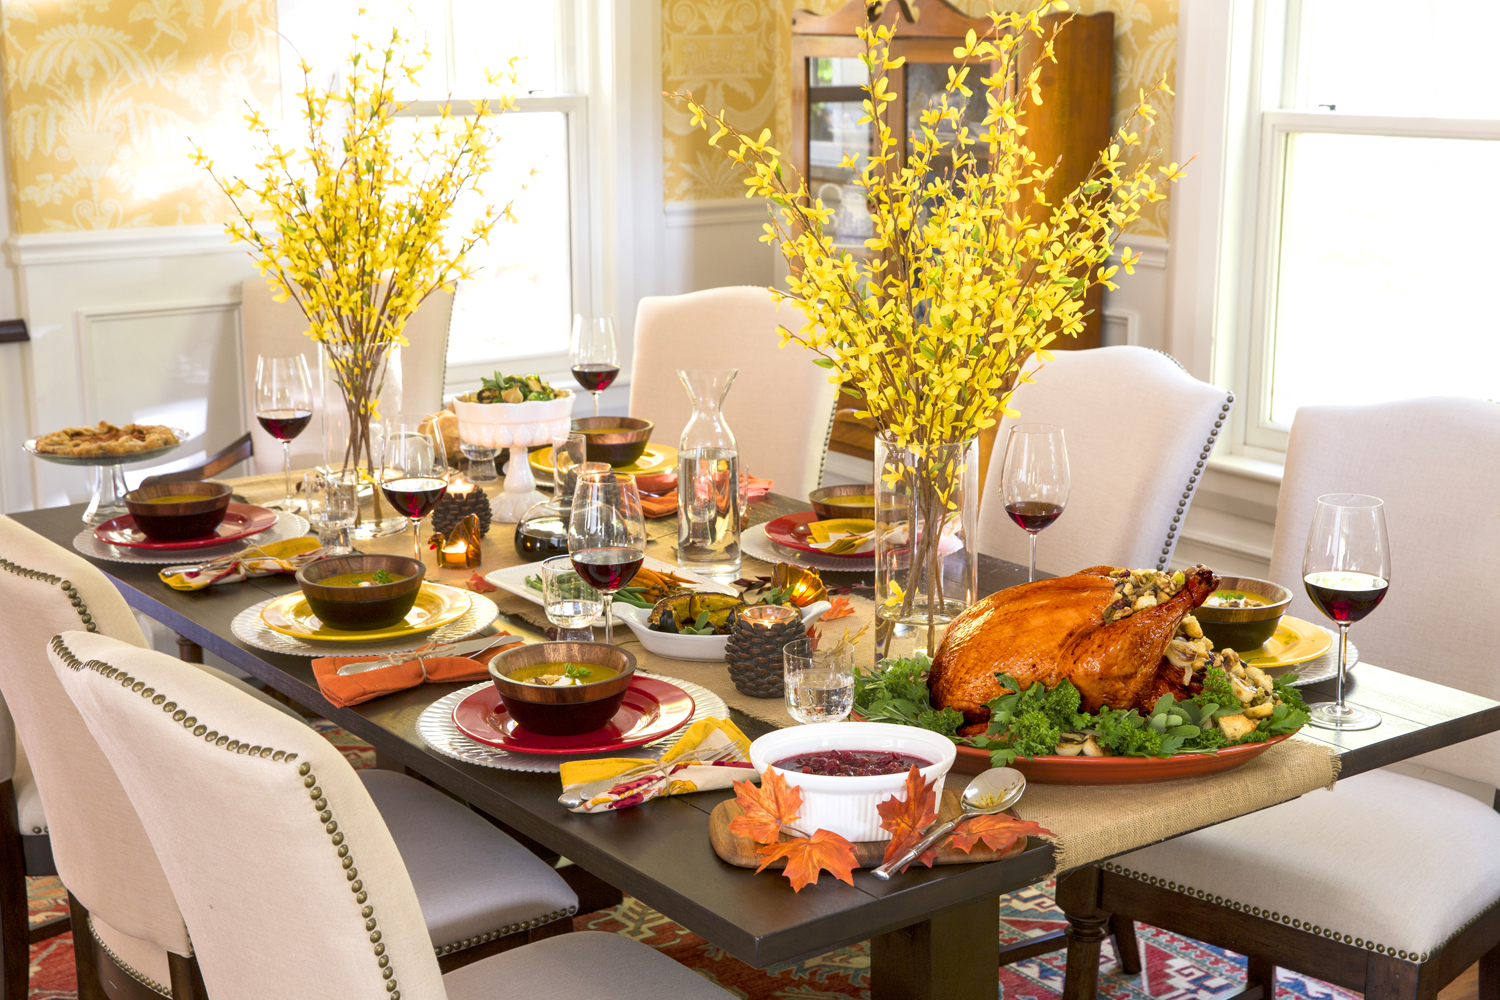 10 tips for decorating and setting your thanksgiving table - Dinner table decoration ideas ...